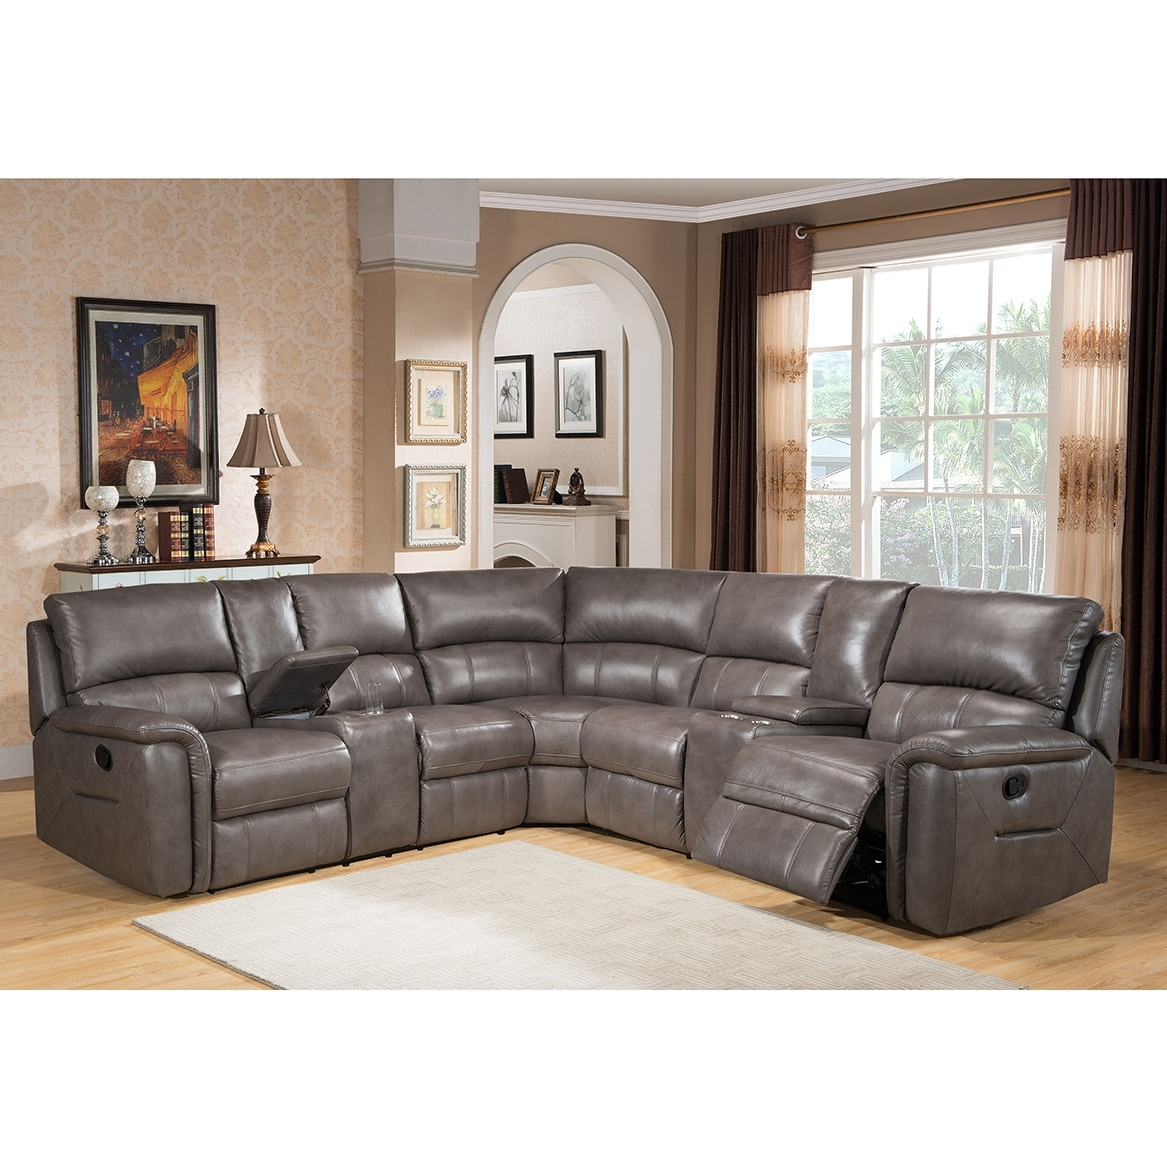 Most Recent Media Room Sectional Sofas – Fjellkjeden Throughout Media Room Sectional Sofas (View 9 of 15)